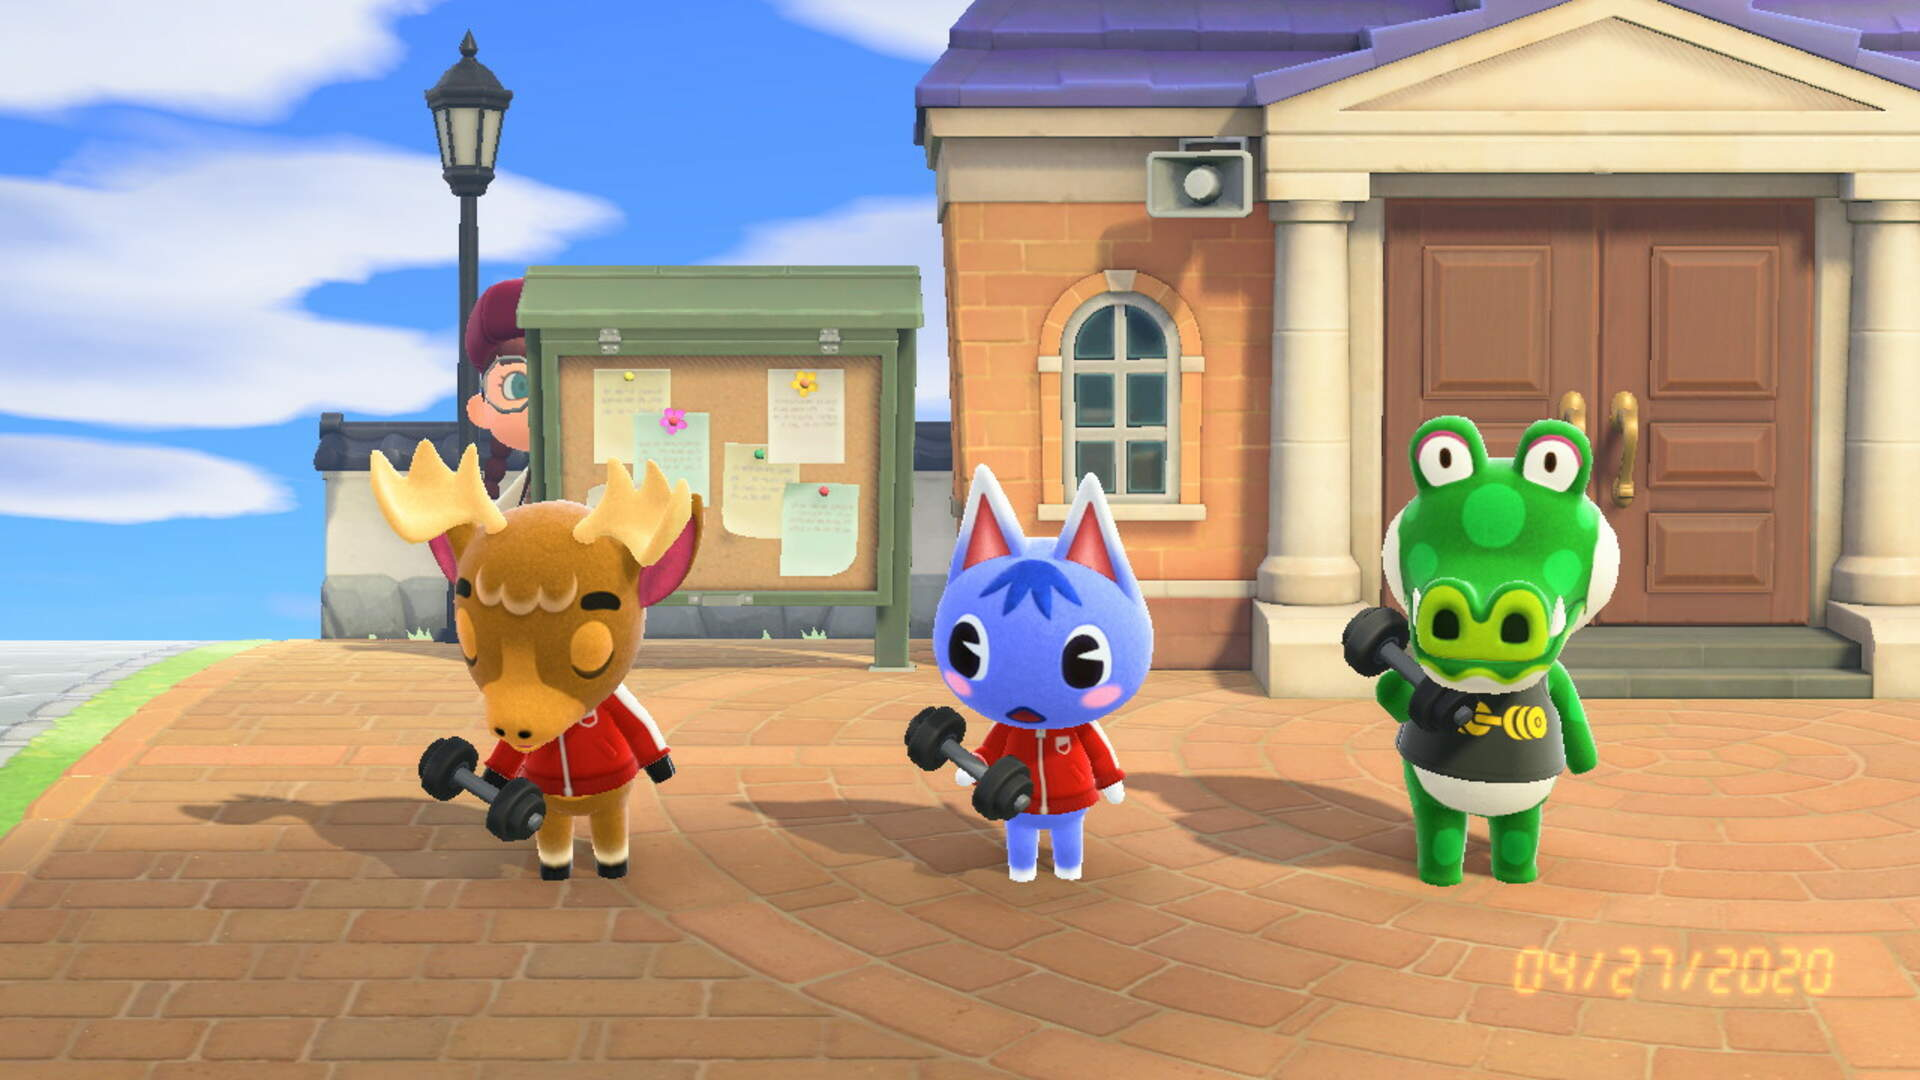 How We're Feeling About Animal Crossing: New Horizons After Its First Full Month